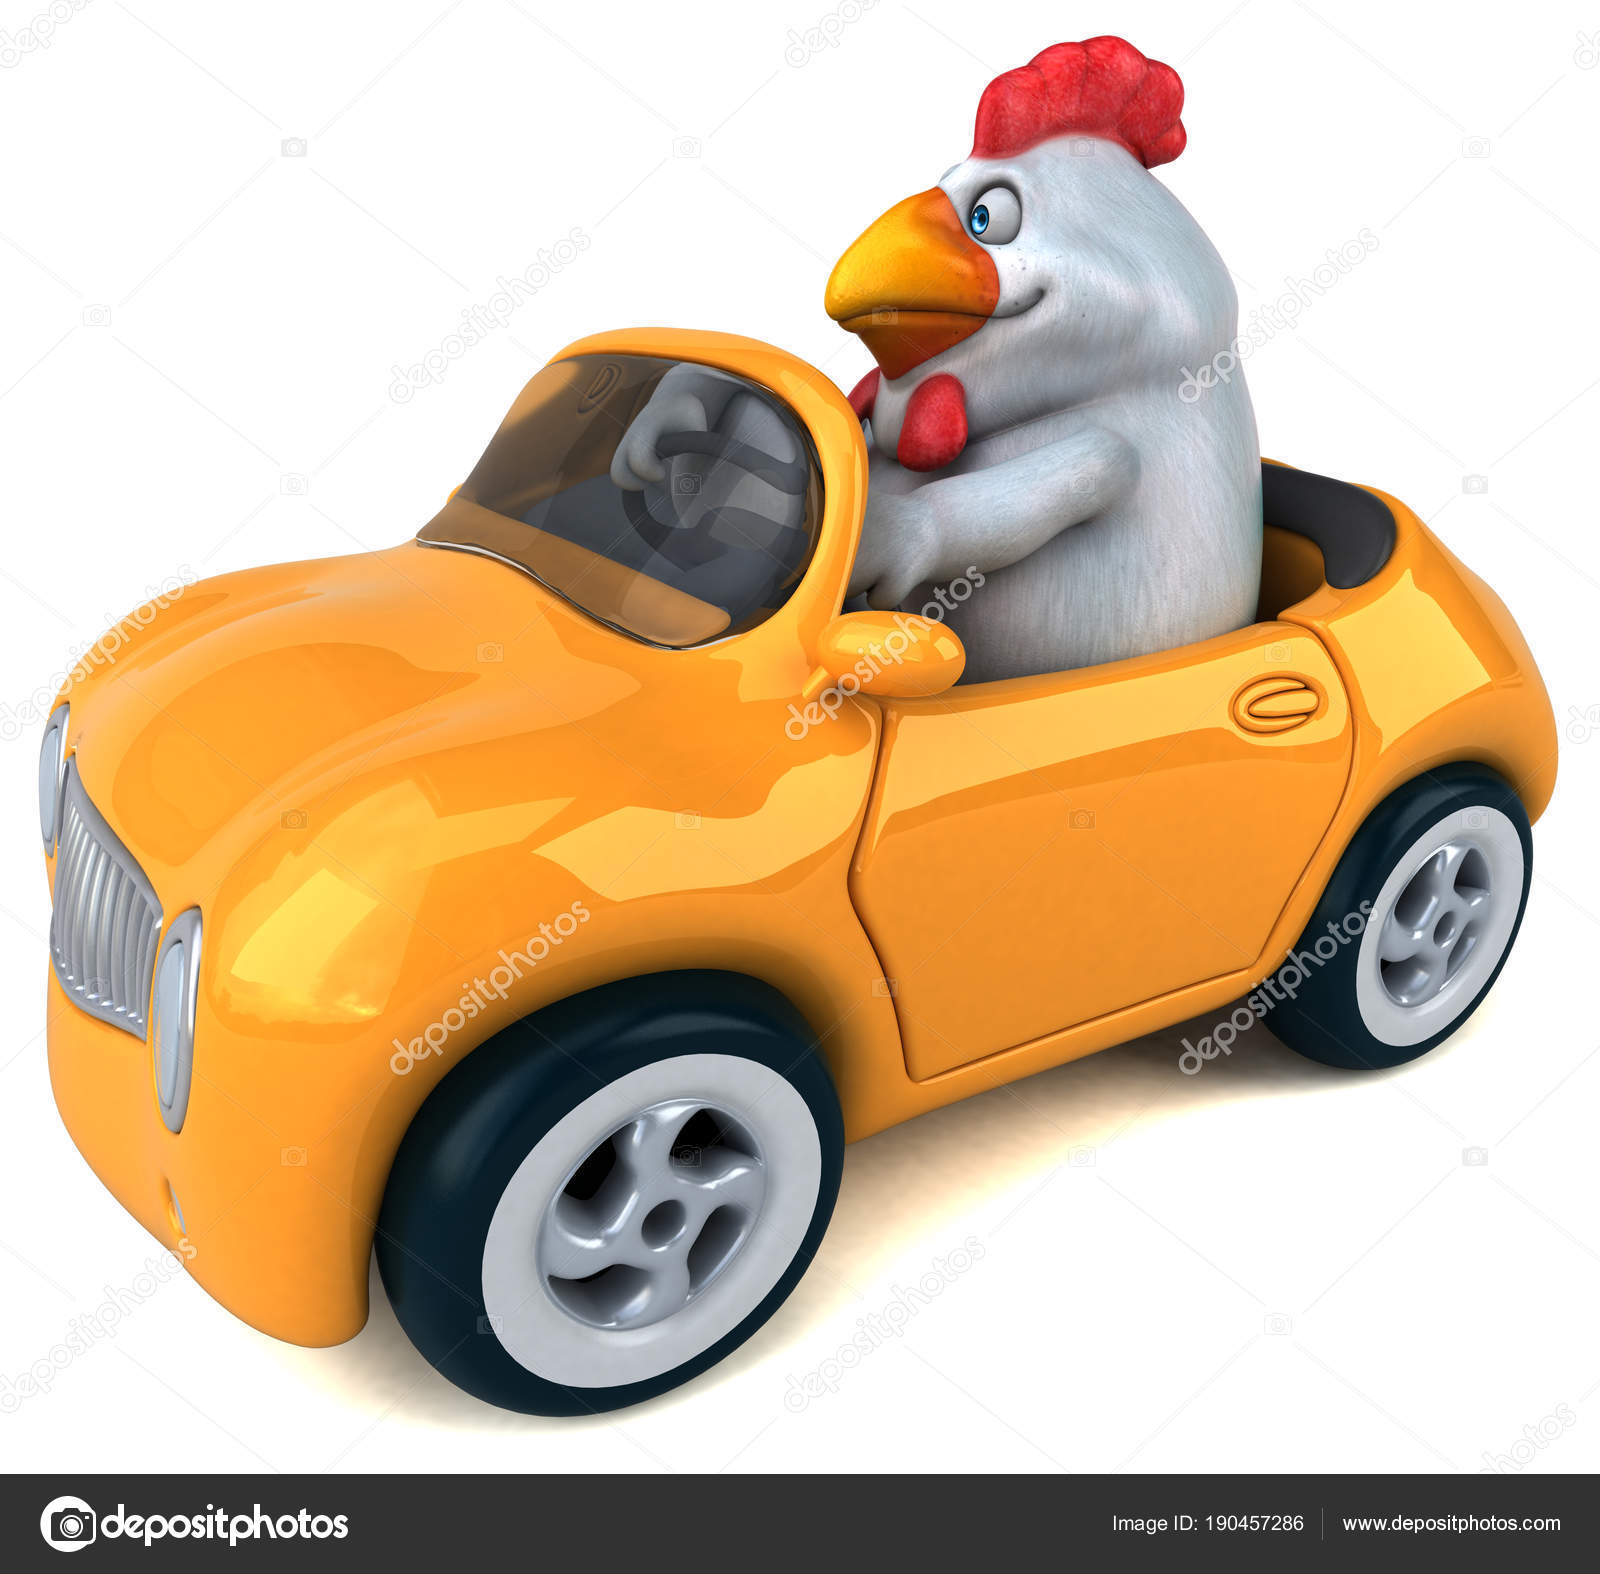 Fun Cartoon Character Car Illustration Stock Photo C Julos 190457286